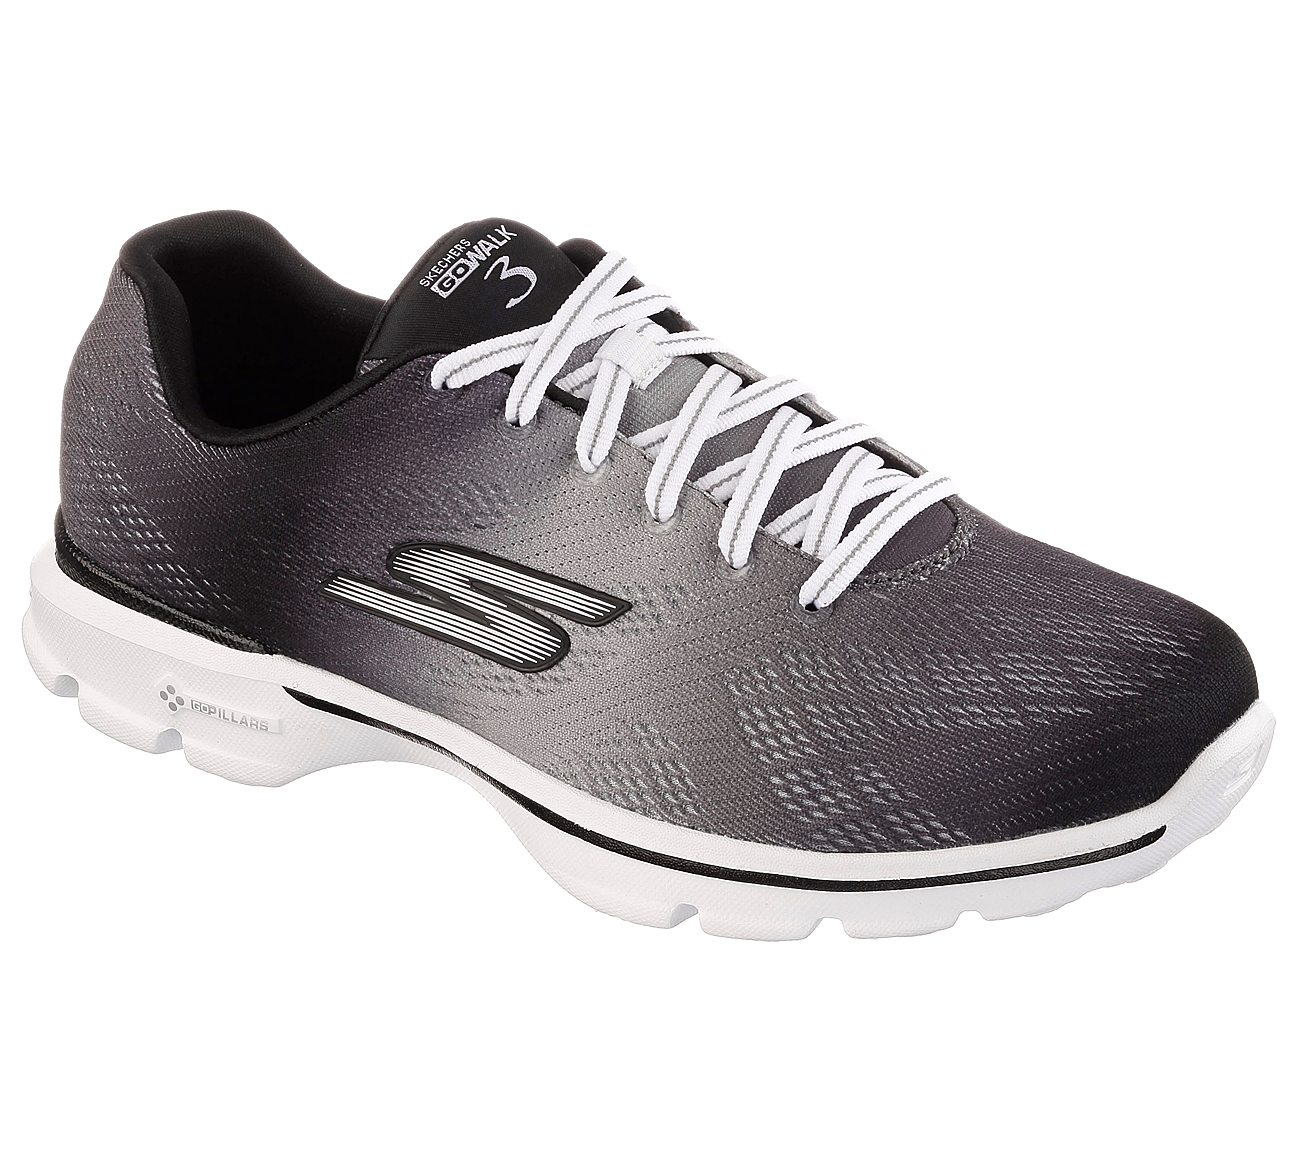 Skechers GOwalk 3 Pulse Sneaker Black/White I43y2876